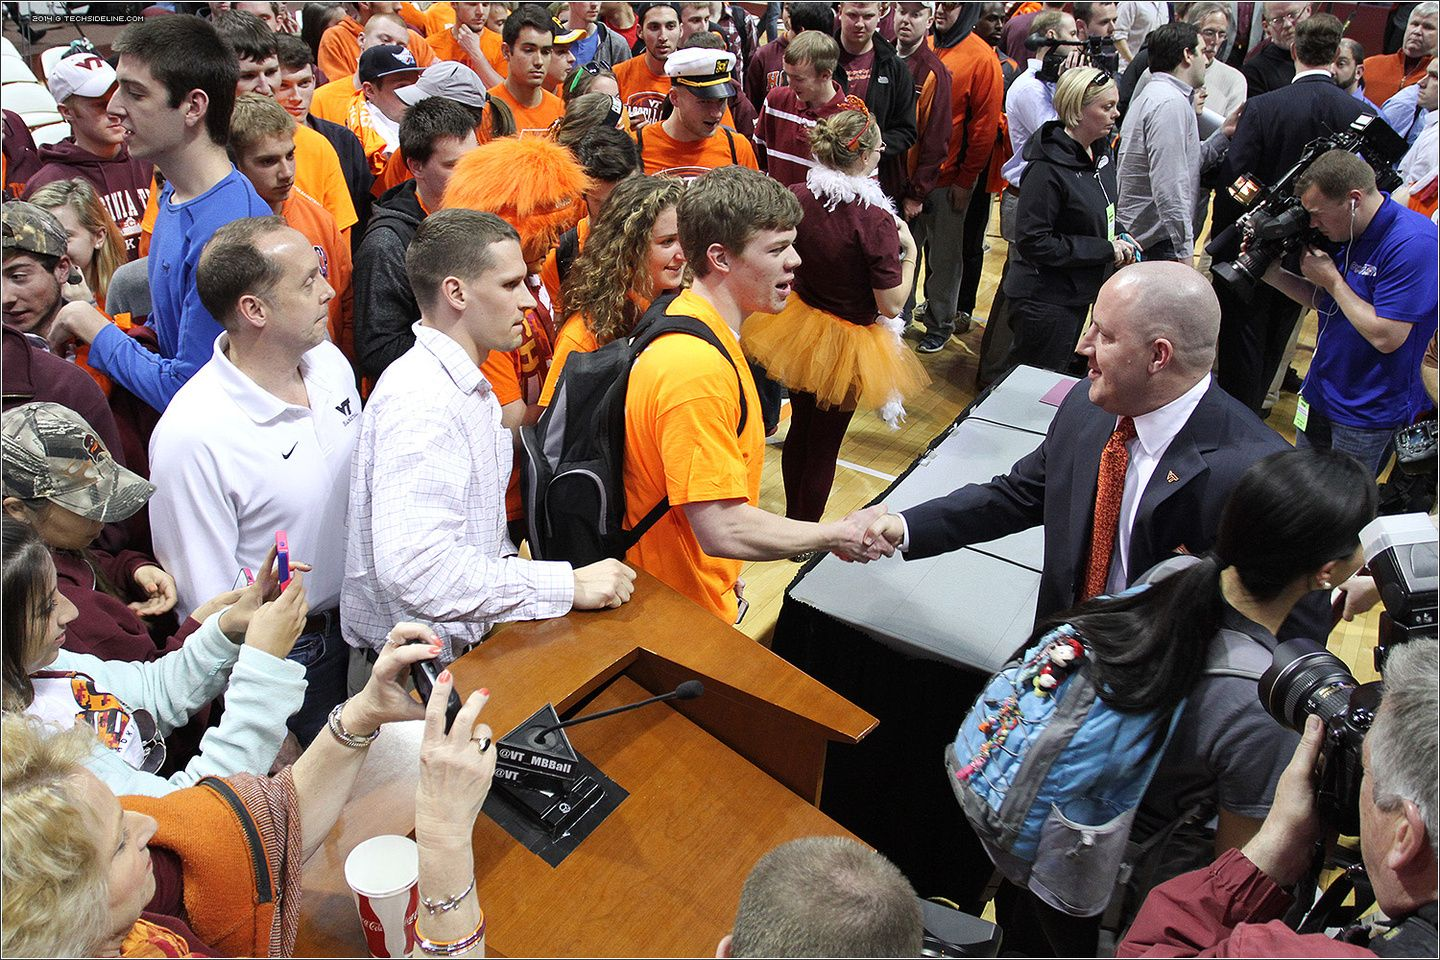 2014.03.24. Press Conference introducing Buzz Williams as